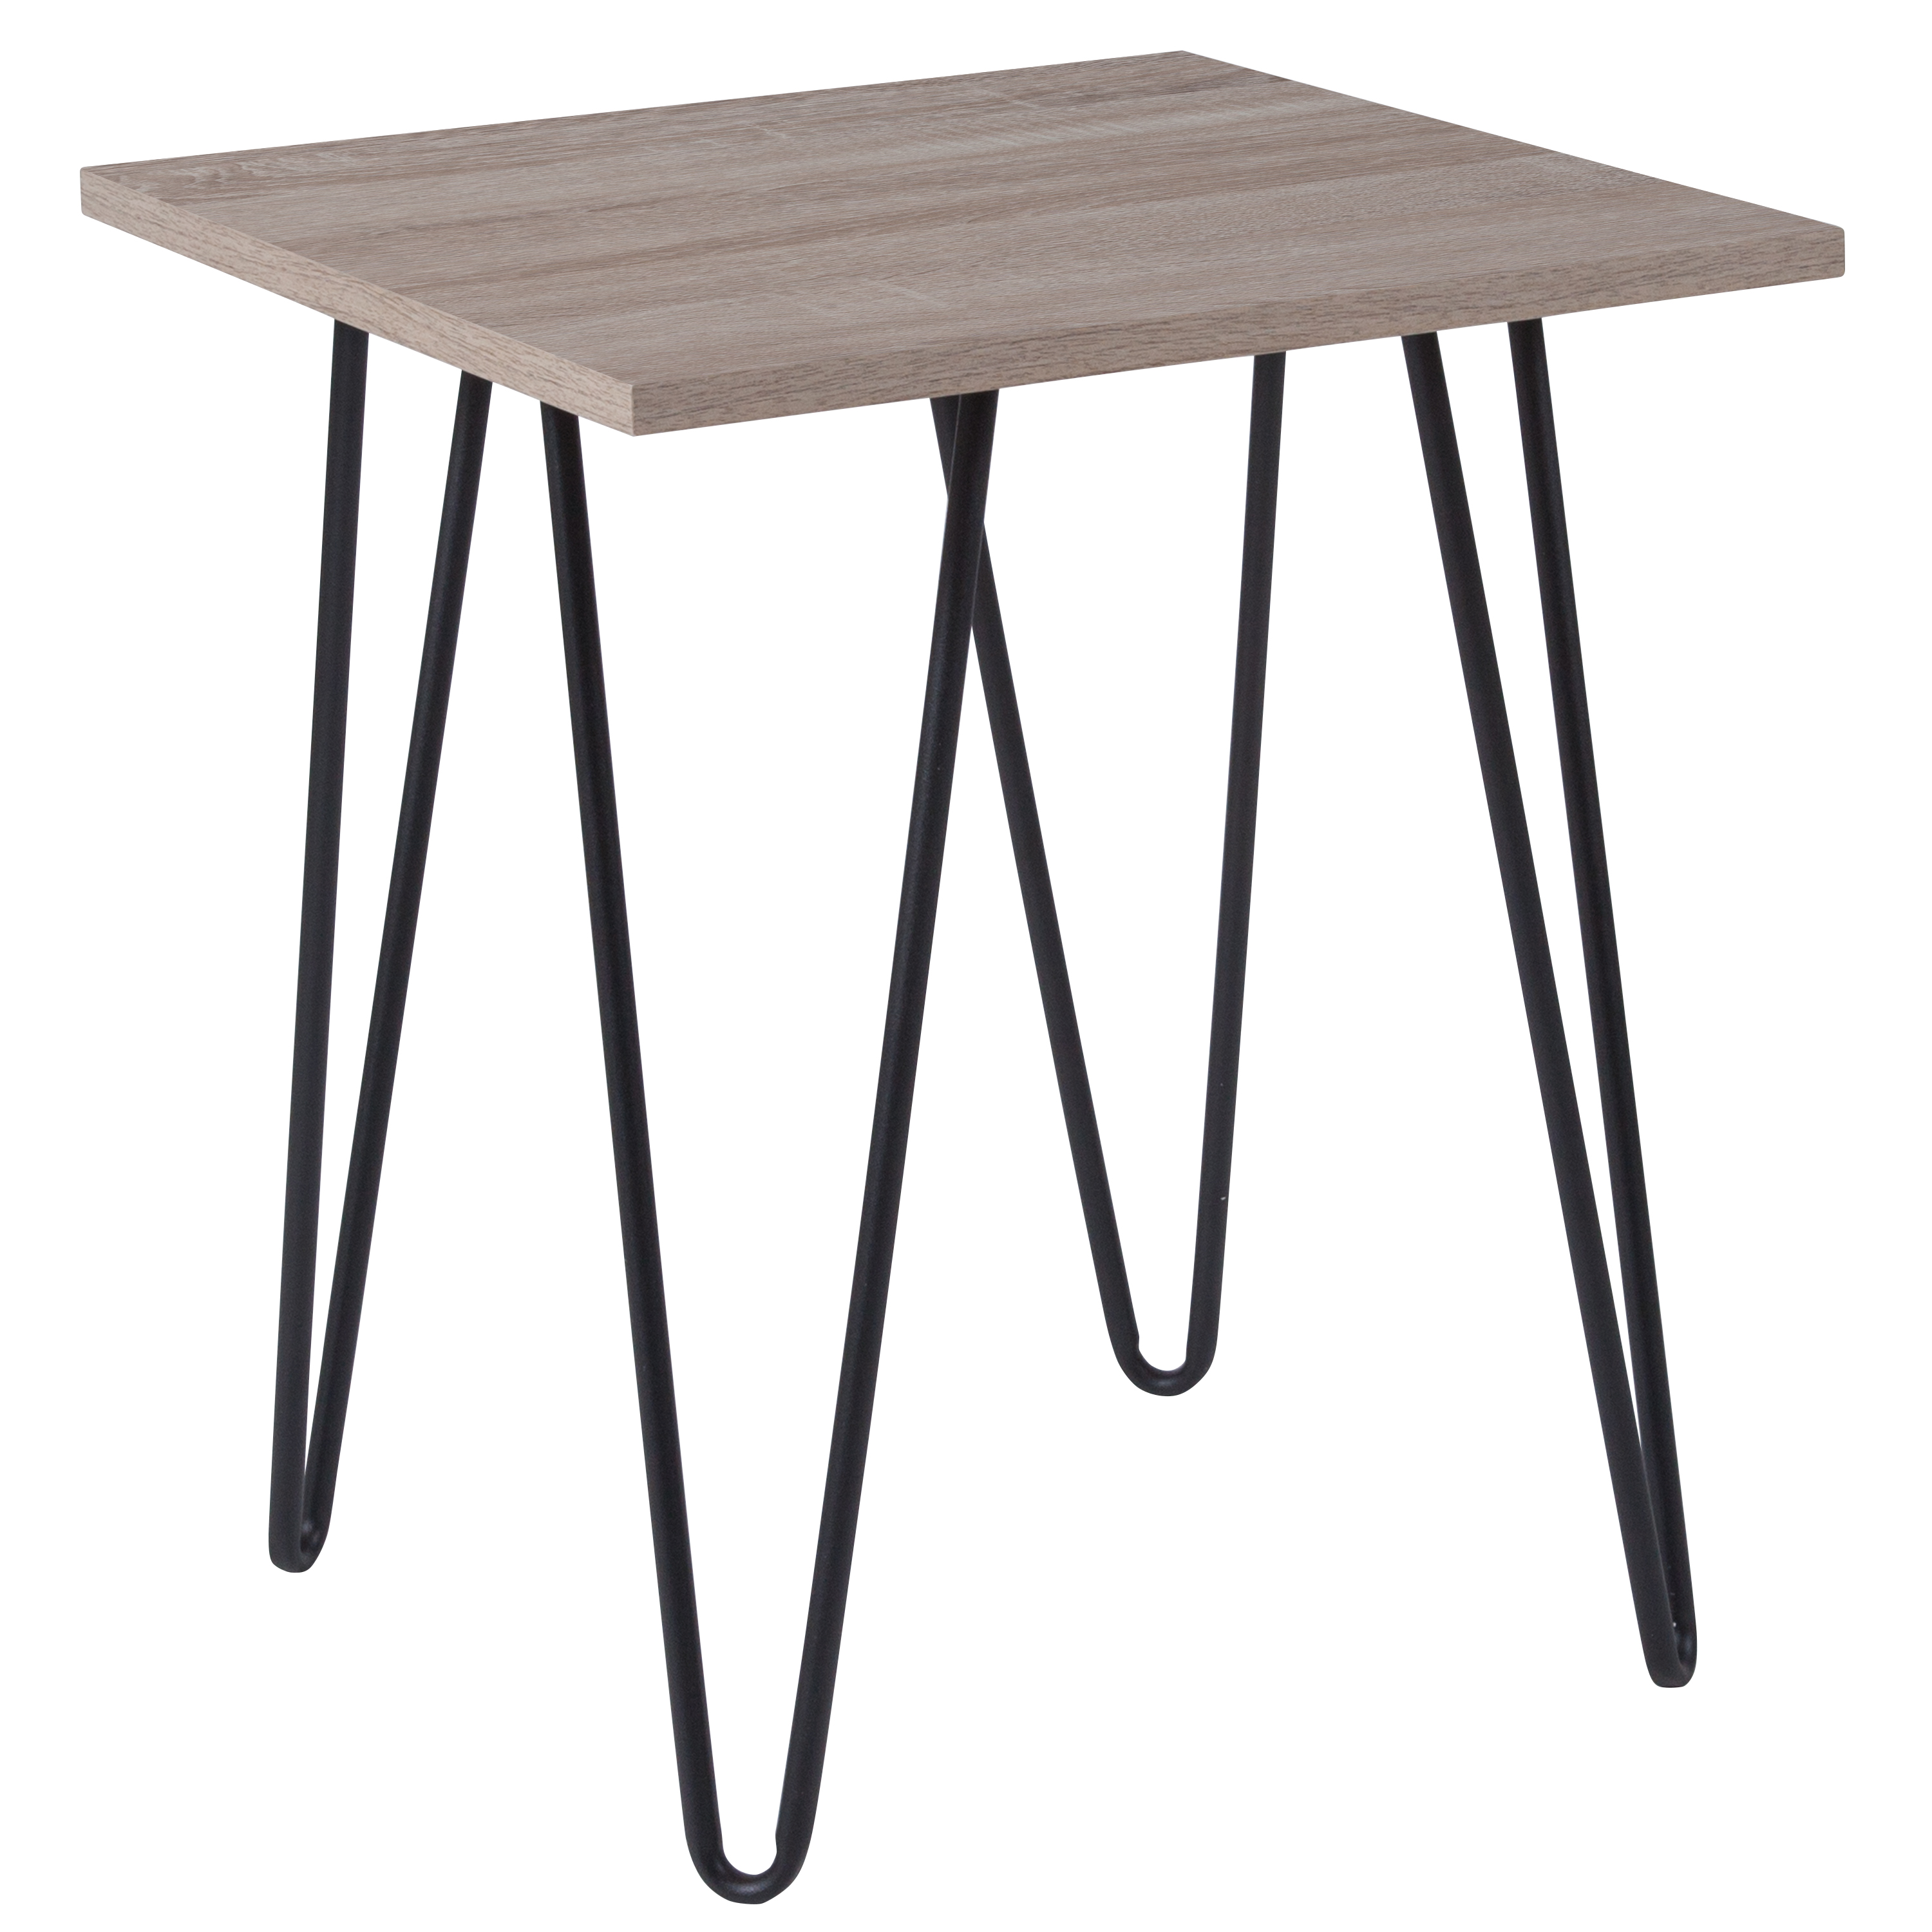 Flash Furniture Oak Park Collection Driftwood Wood Grain Finish End Table with Black Metal Legs